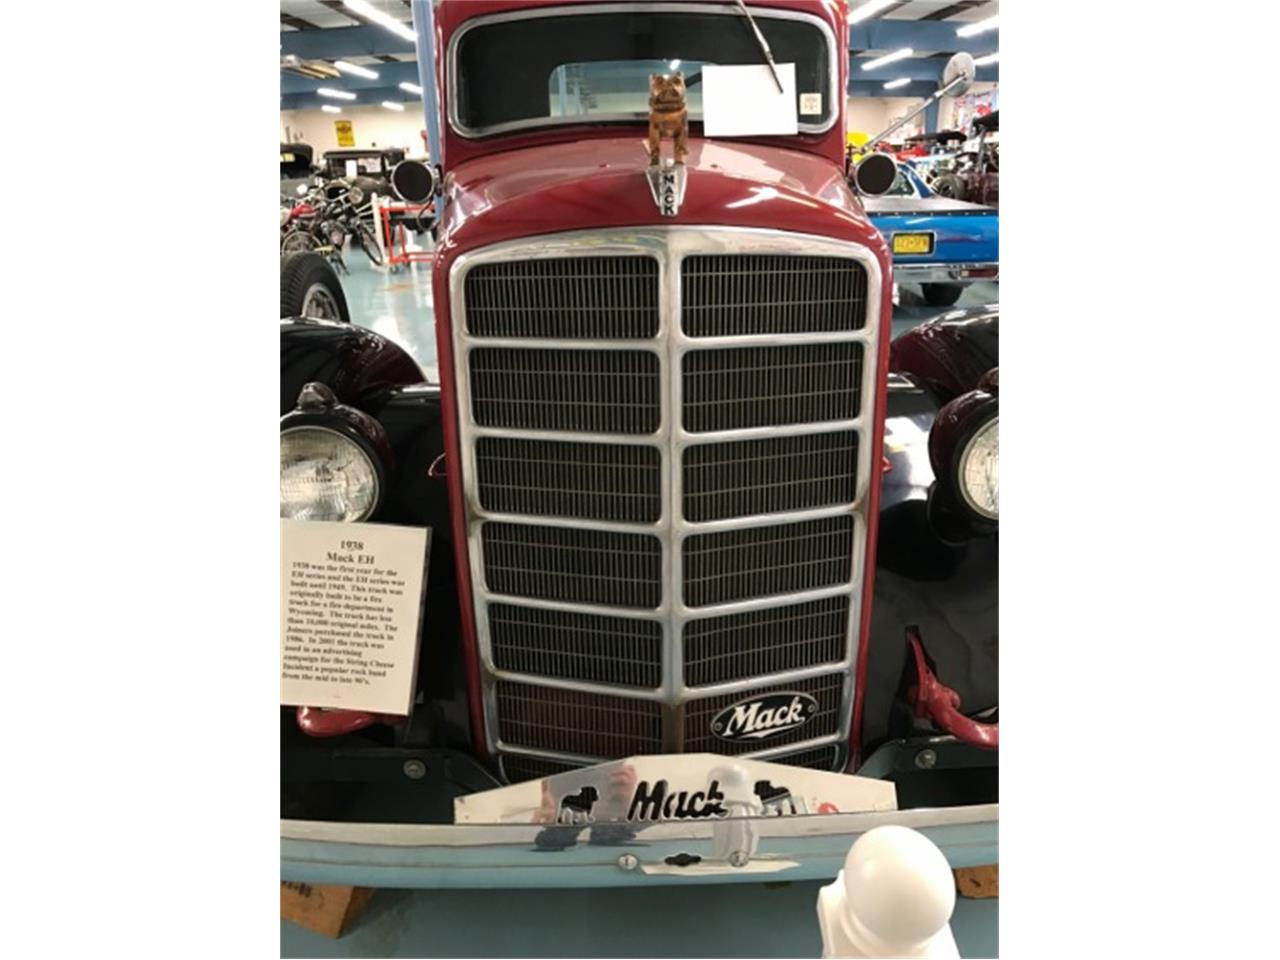 1938 Mack Truck for sale in Peoria, AZ – photo 3